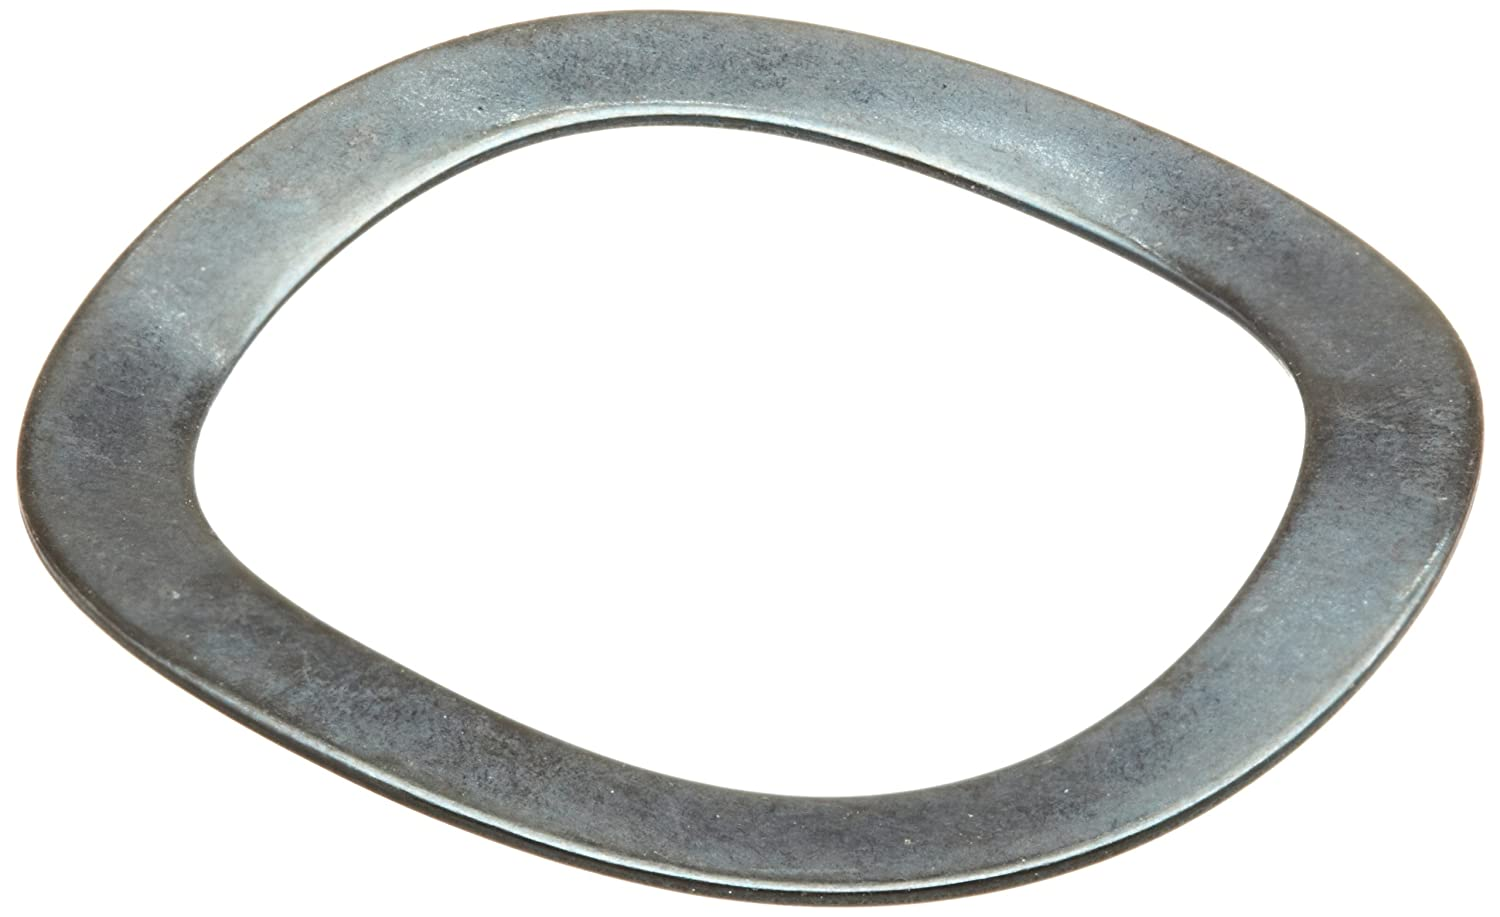 0.719 ID 0.01 Thick 0.033 Compressed Height Wave Washers Pack of 10 Inch 6lbs Load, High Carbon Steel 0.925 OD 3 Waves